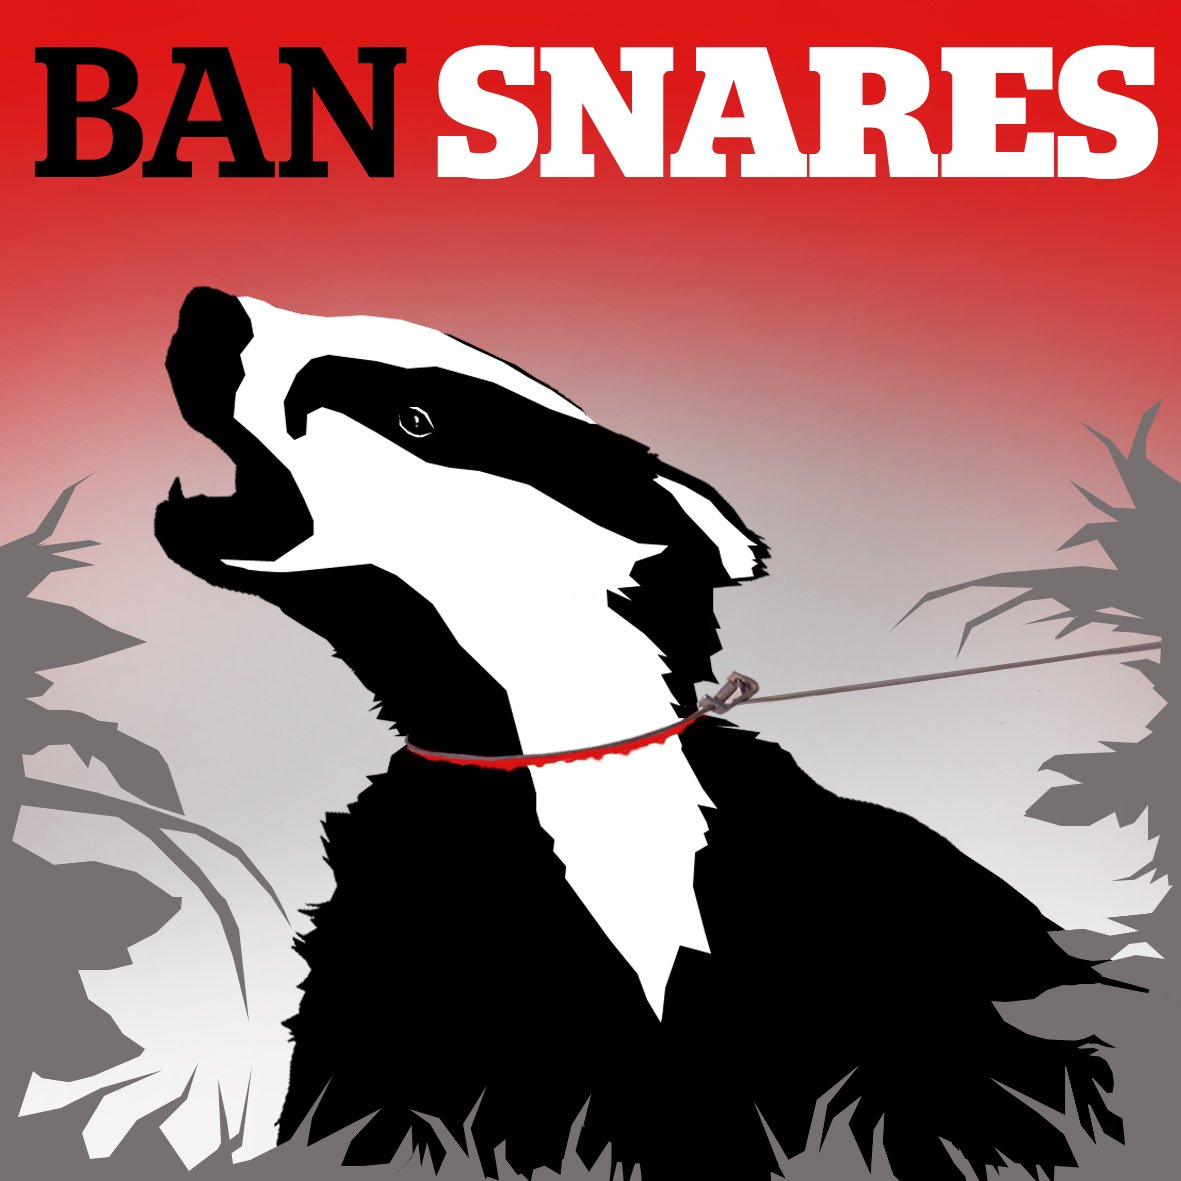 With 1.7 million animals caught every year, it's time to #BanSnares https://t.co/CXHWZIzIsP https://t.co/07j3P7wpwr